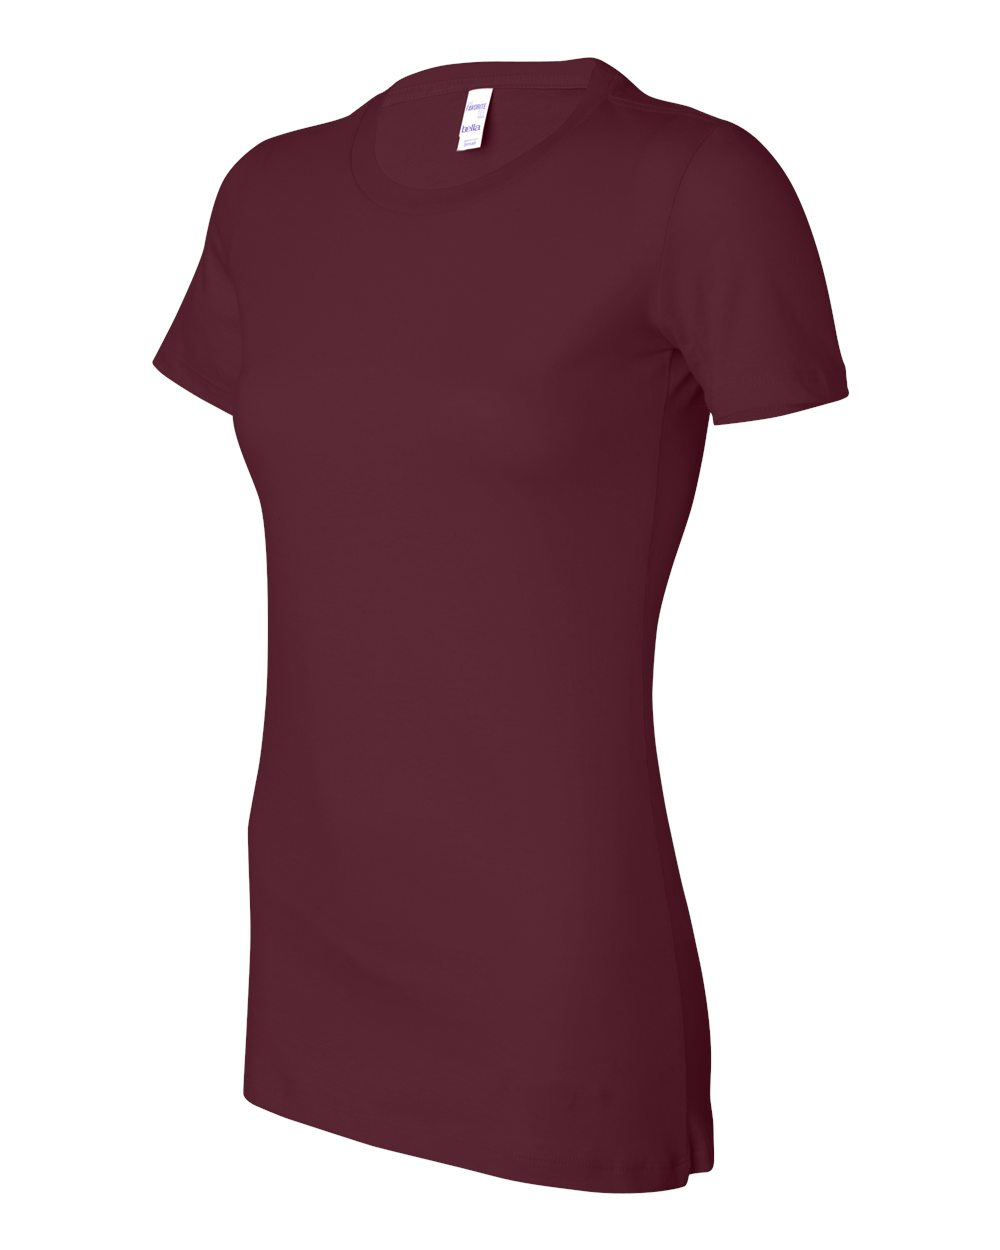 Bella-Canvas-Womens-The-Favorite-T-Shirt-6004-Size-S-2XL thumbnail 106